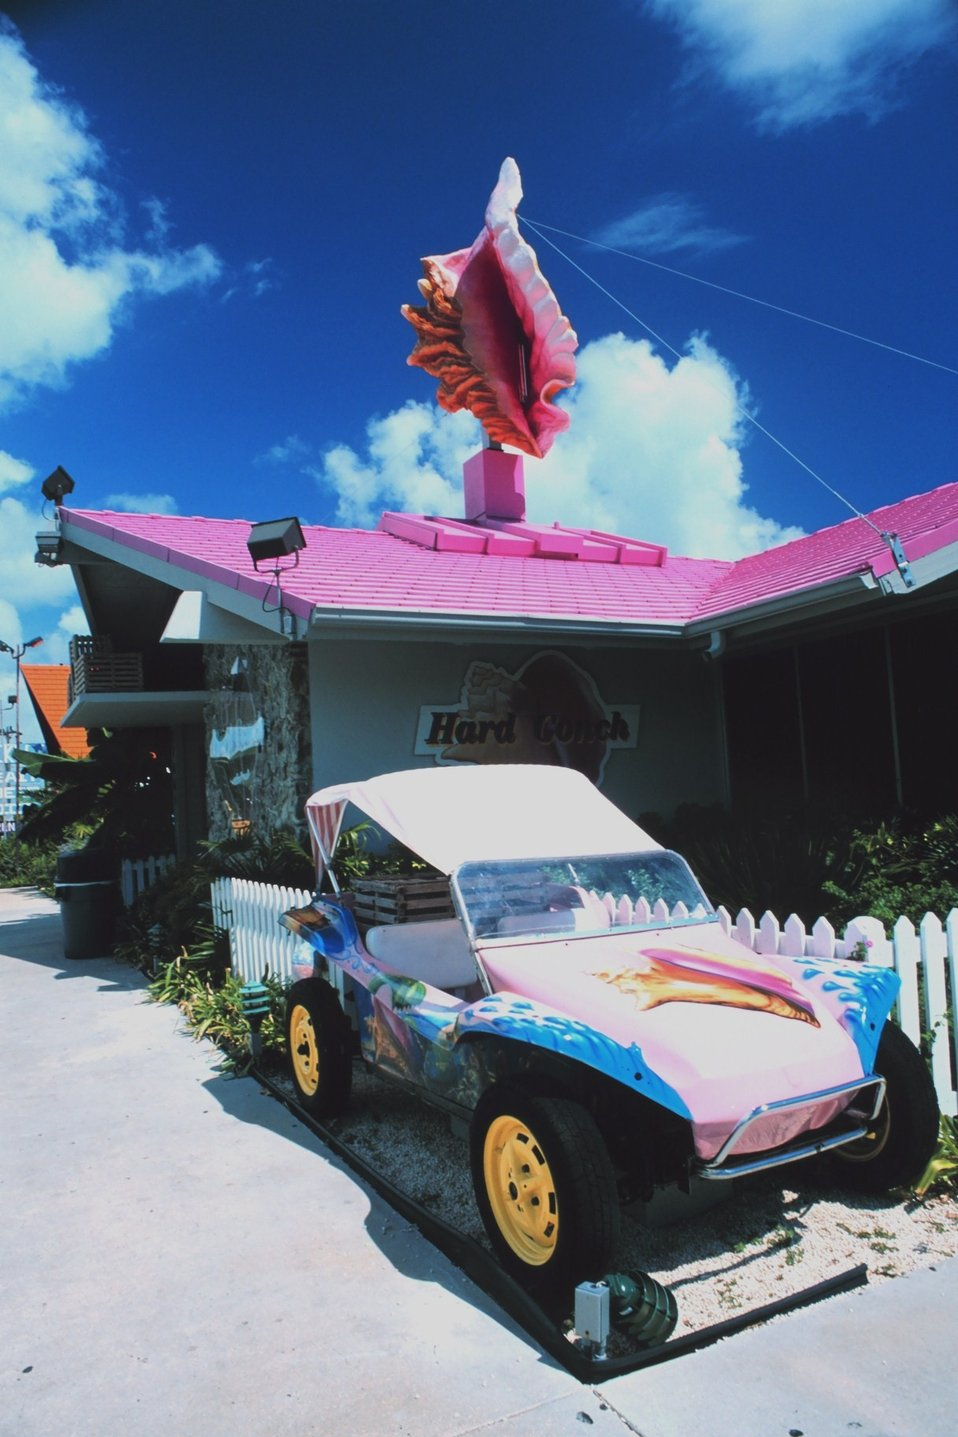 The 'Hard Conch' restaurant displays shell art